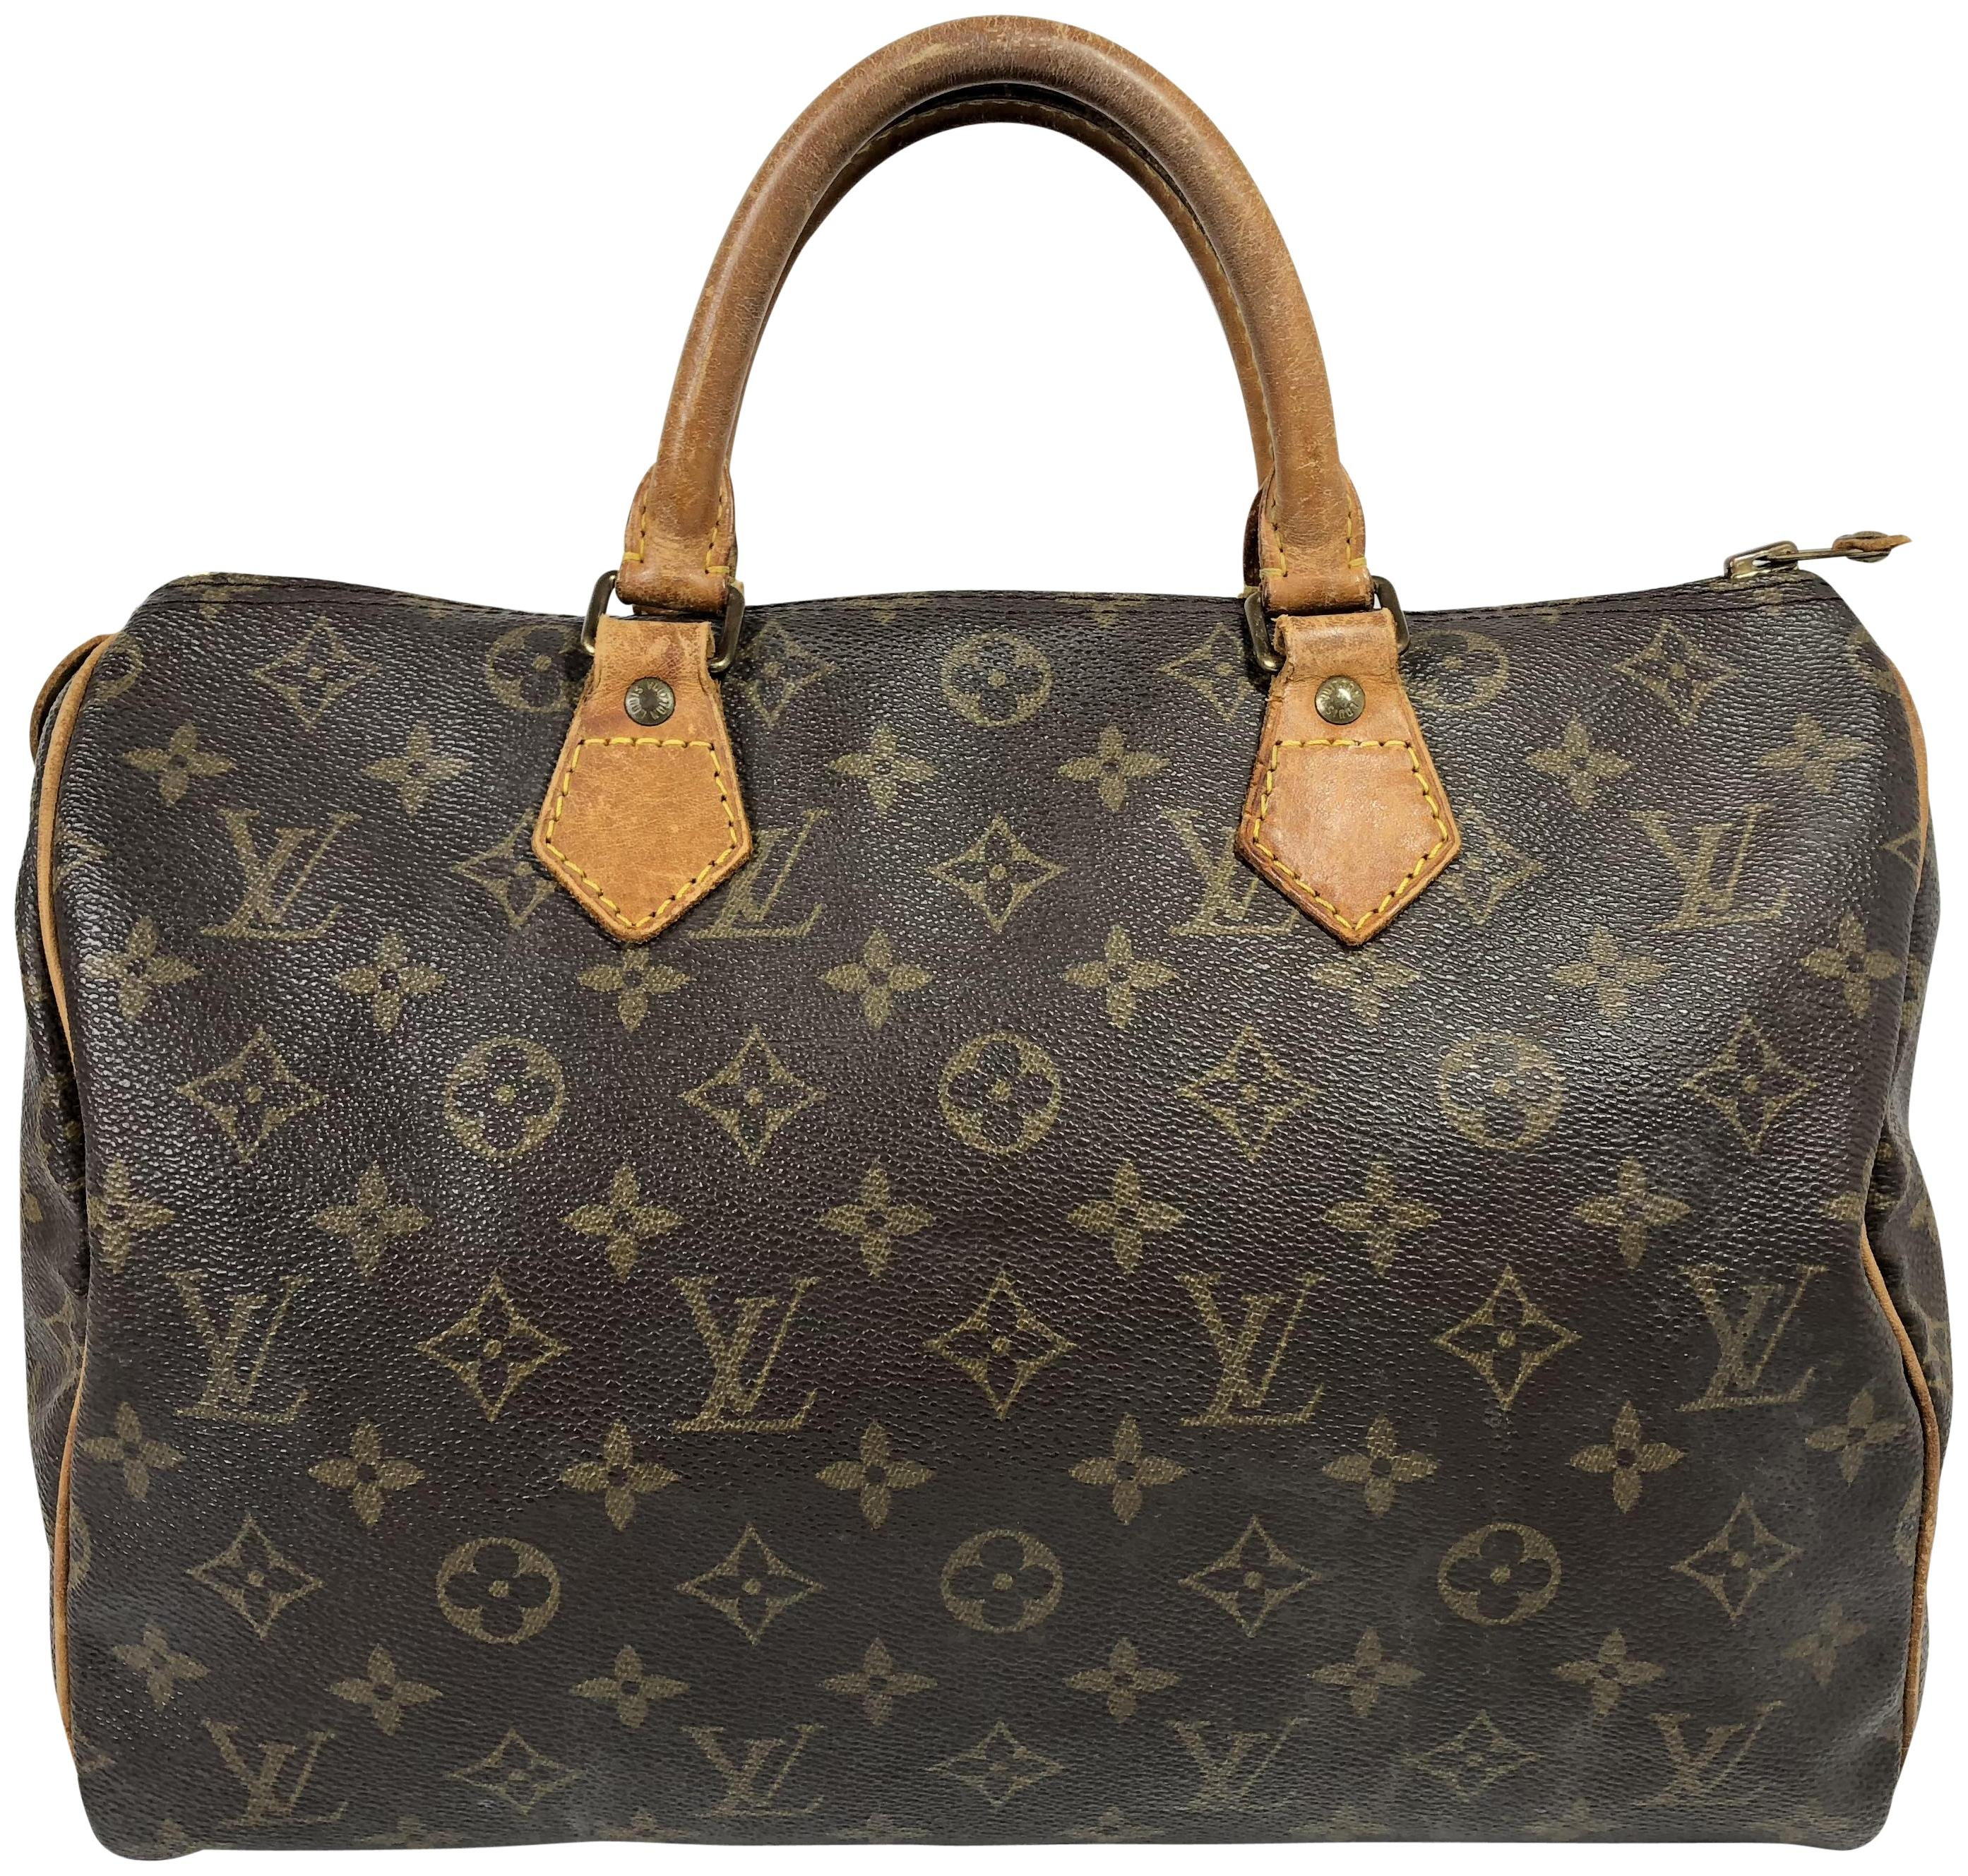 louis vuitton bags. louis vuitton speedy 30 satchel in monogram bags